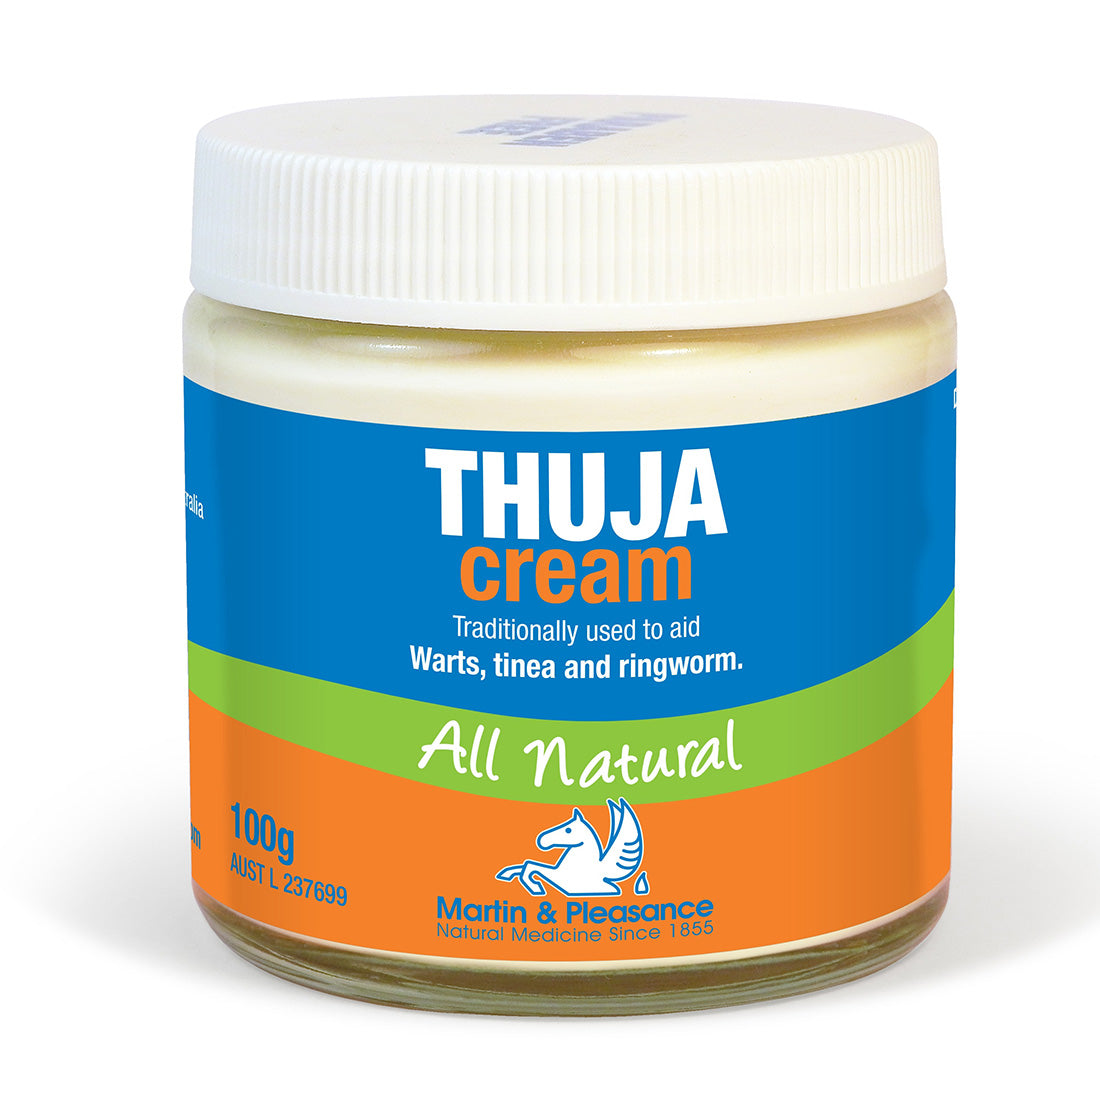 Martin & Pleasance Herbal Cream Thuja 100g